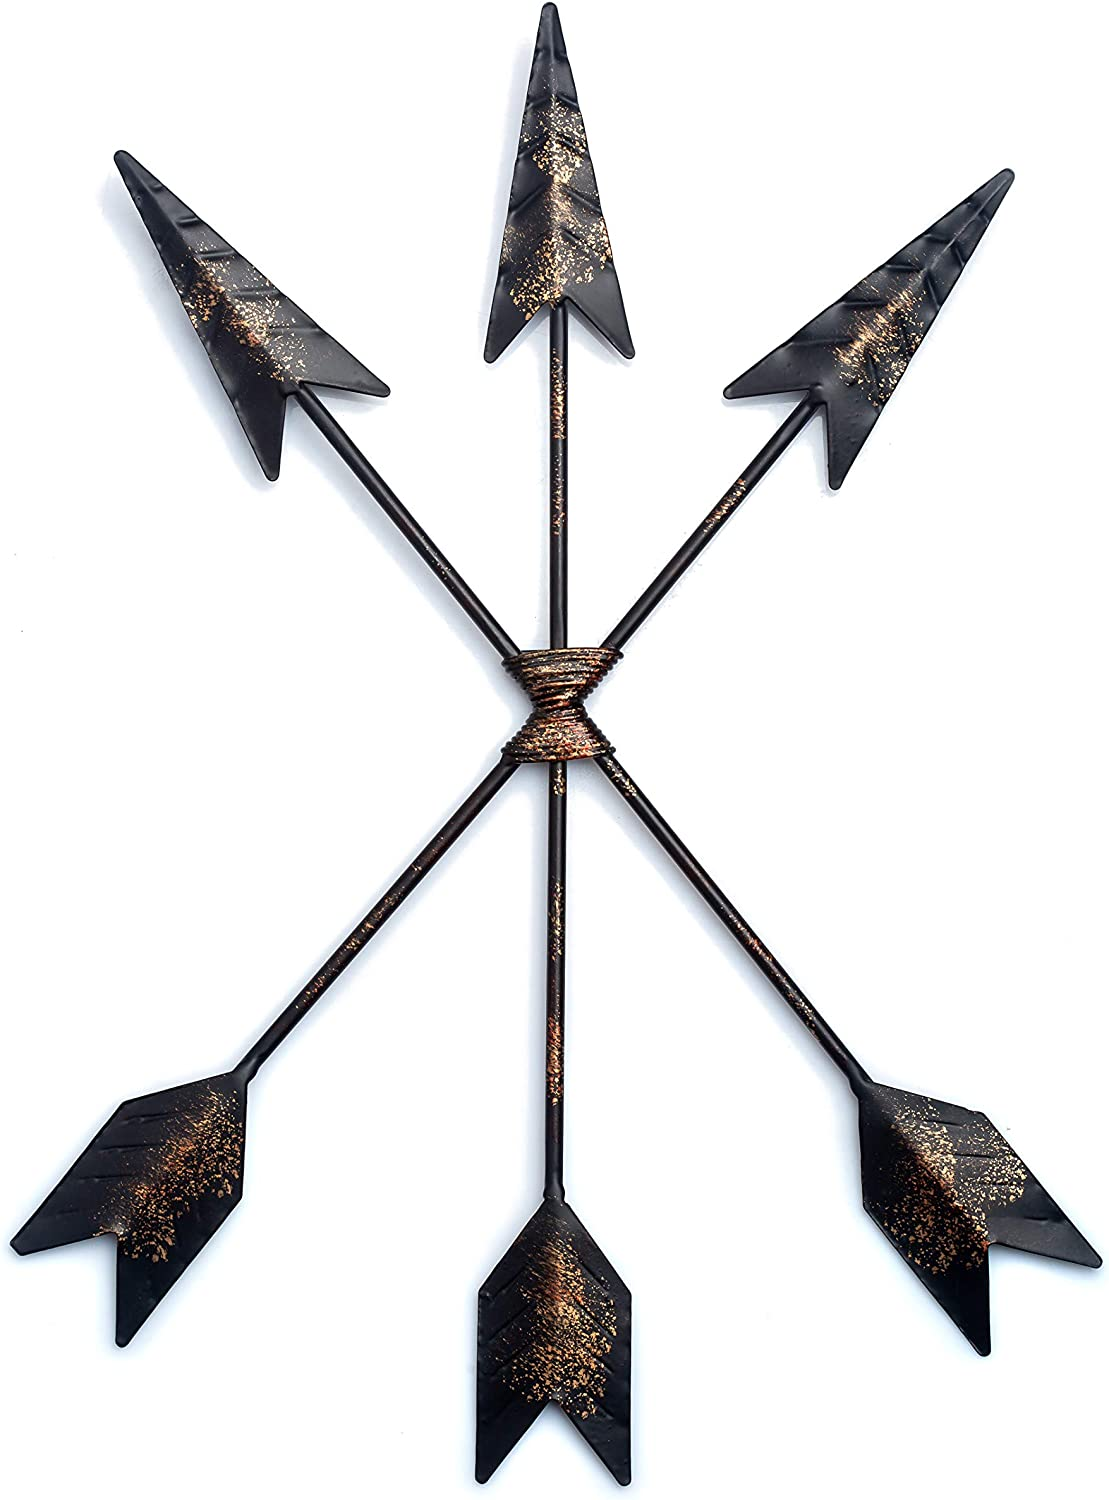 CraftyCrocodile Arrow Wall Decor - Native American Decoration for Rustic, Farmhouse, Distressed Aesthetic - Symbolic Cast Iron Art Piece for Home, Living Room, Gallery Display, Cafe - Hook Included